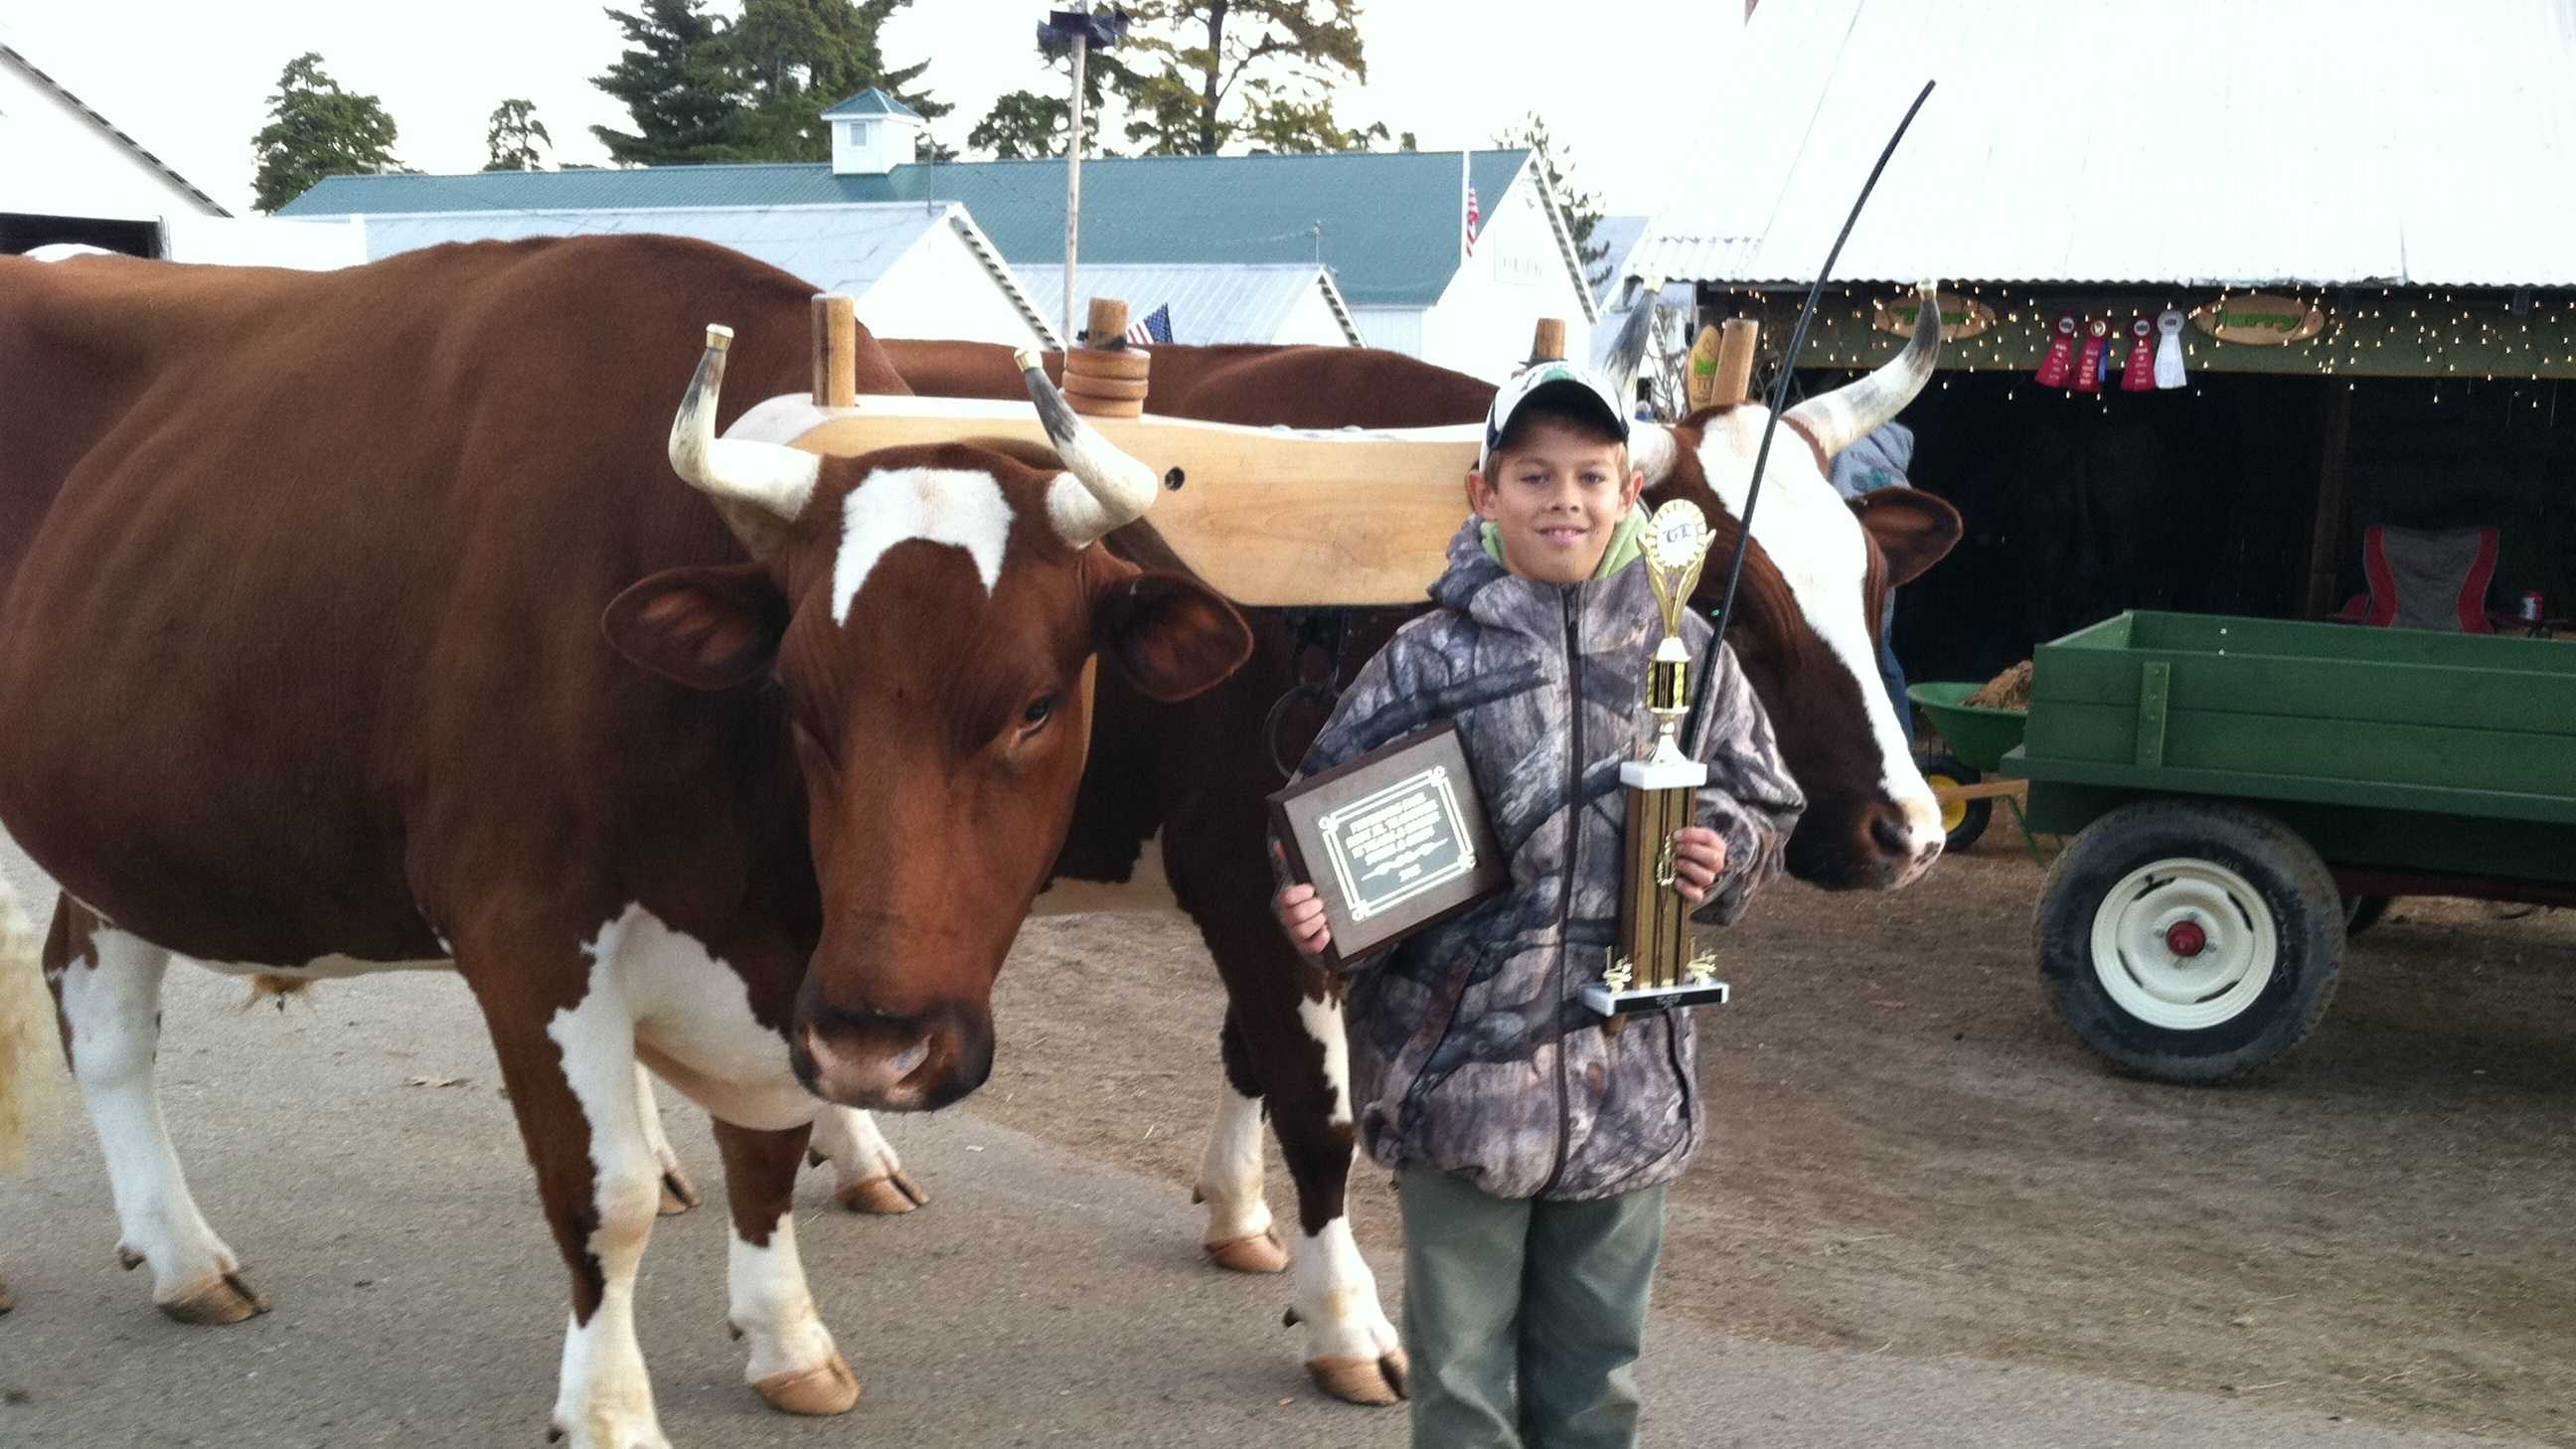 Hayden Lyford of Randolph, Vt. shows off his prize oxen and trophy ahead of the fair.